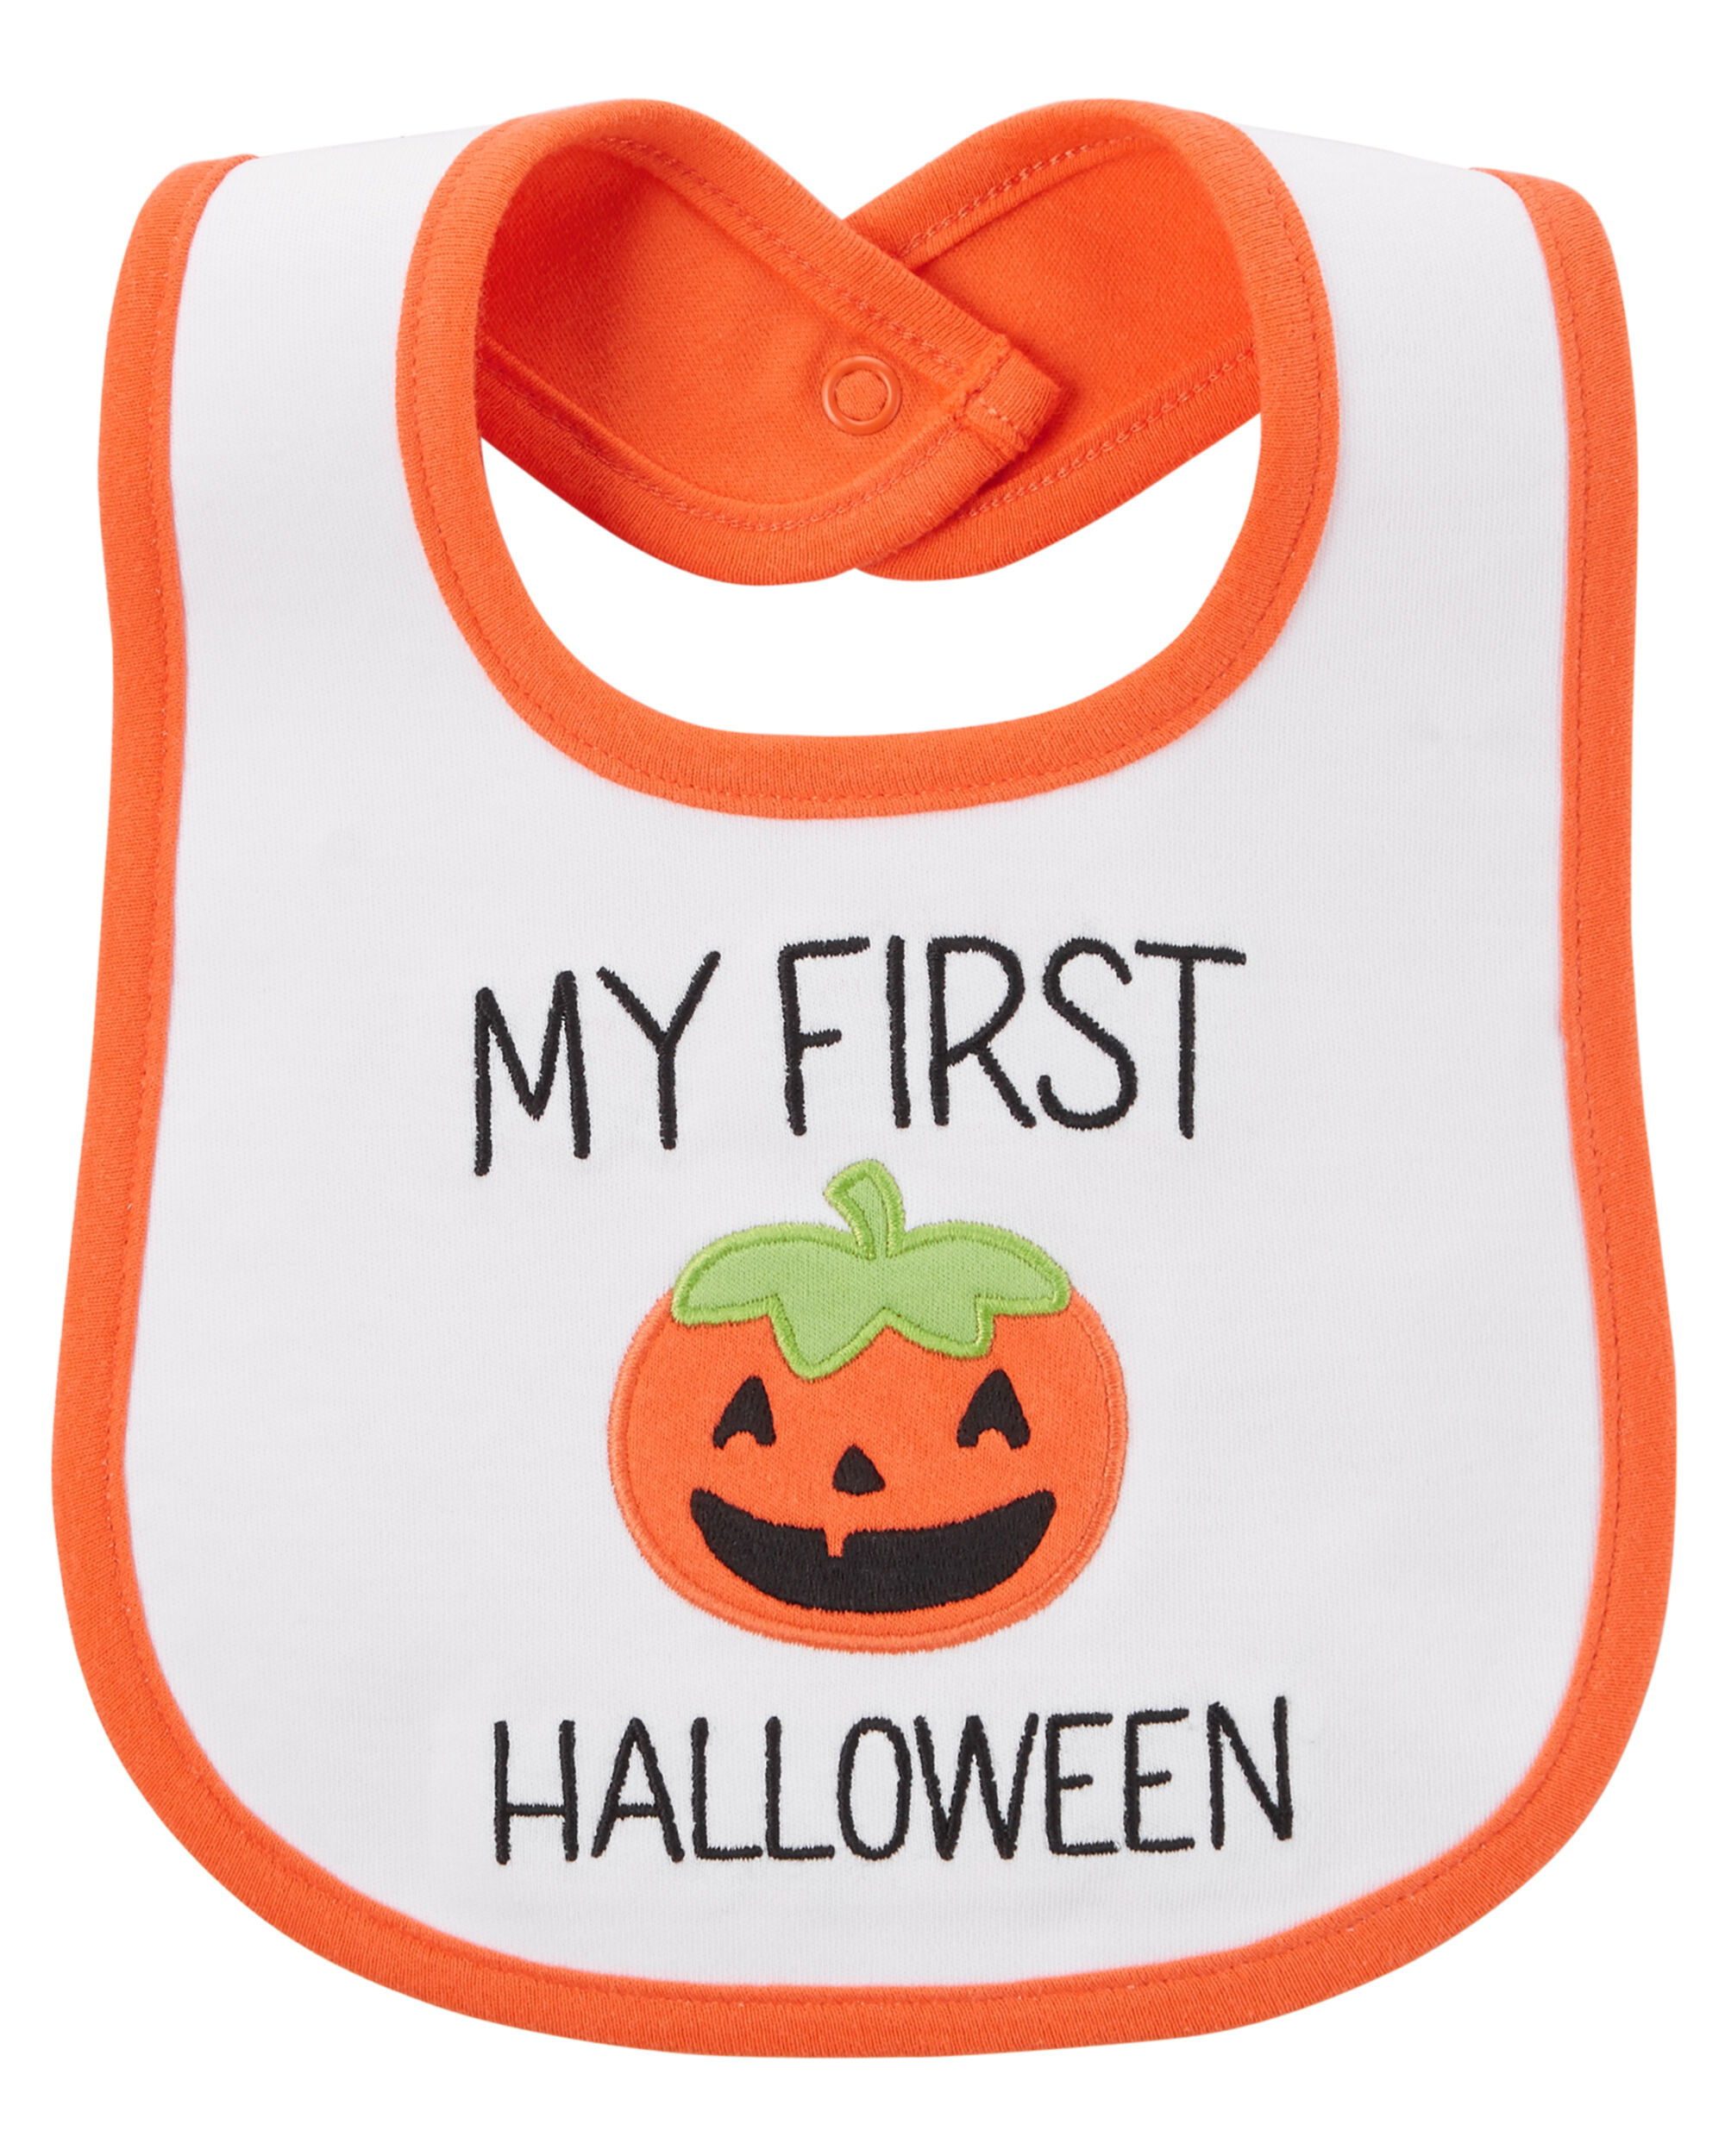 My First Halloween Teething Bib | Carters.com